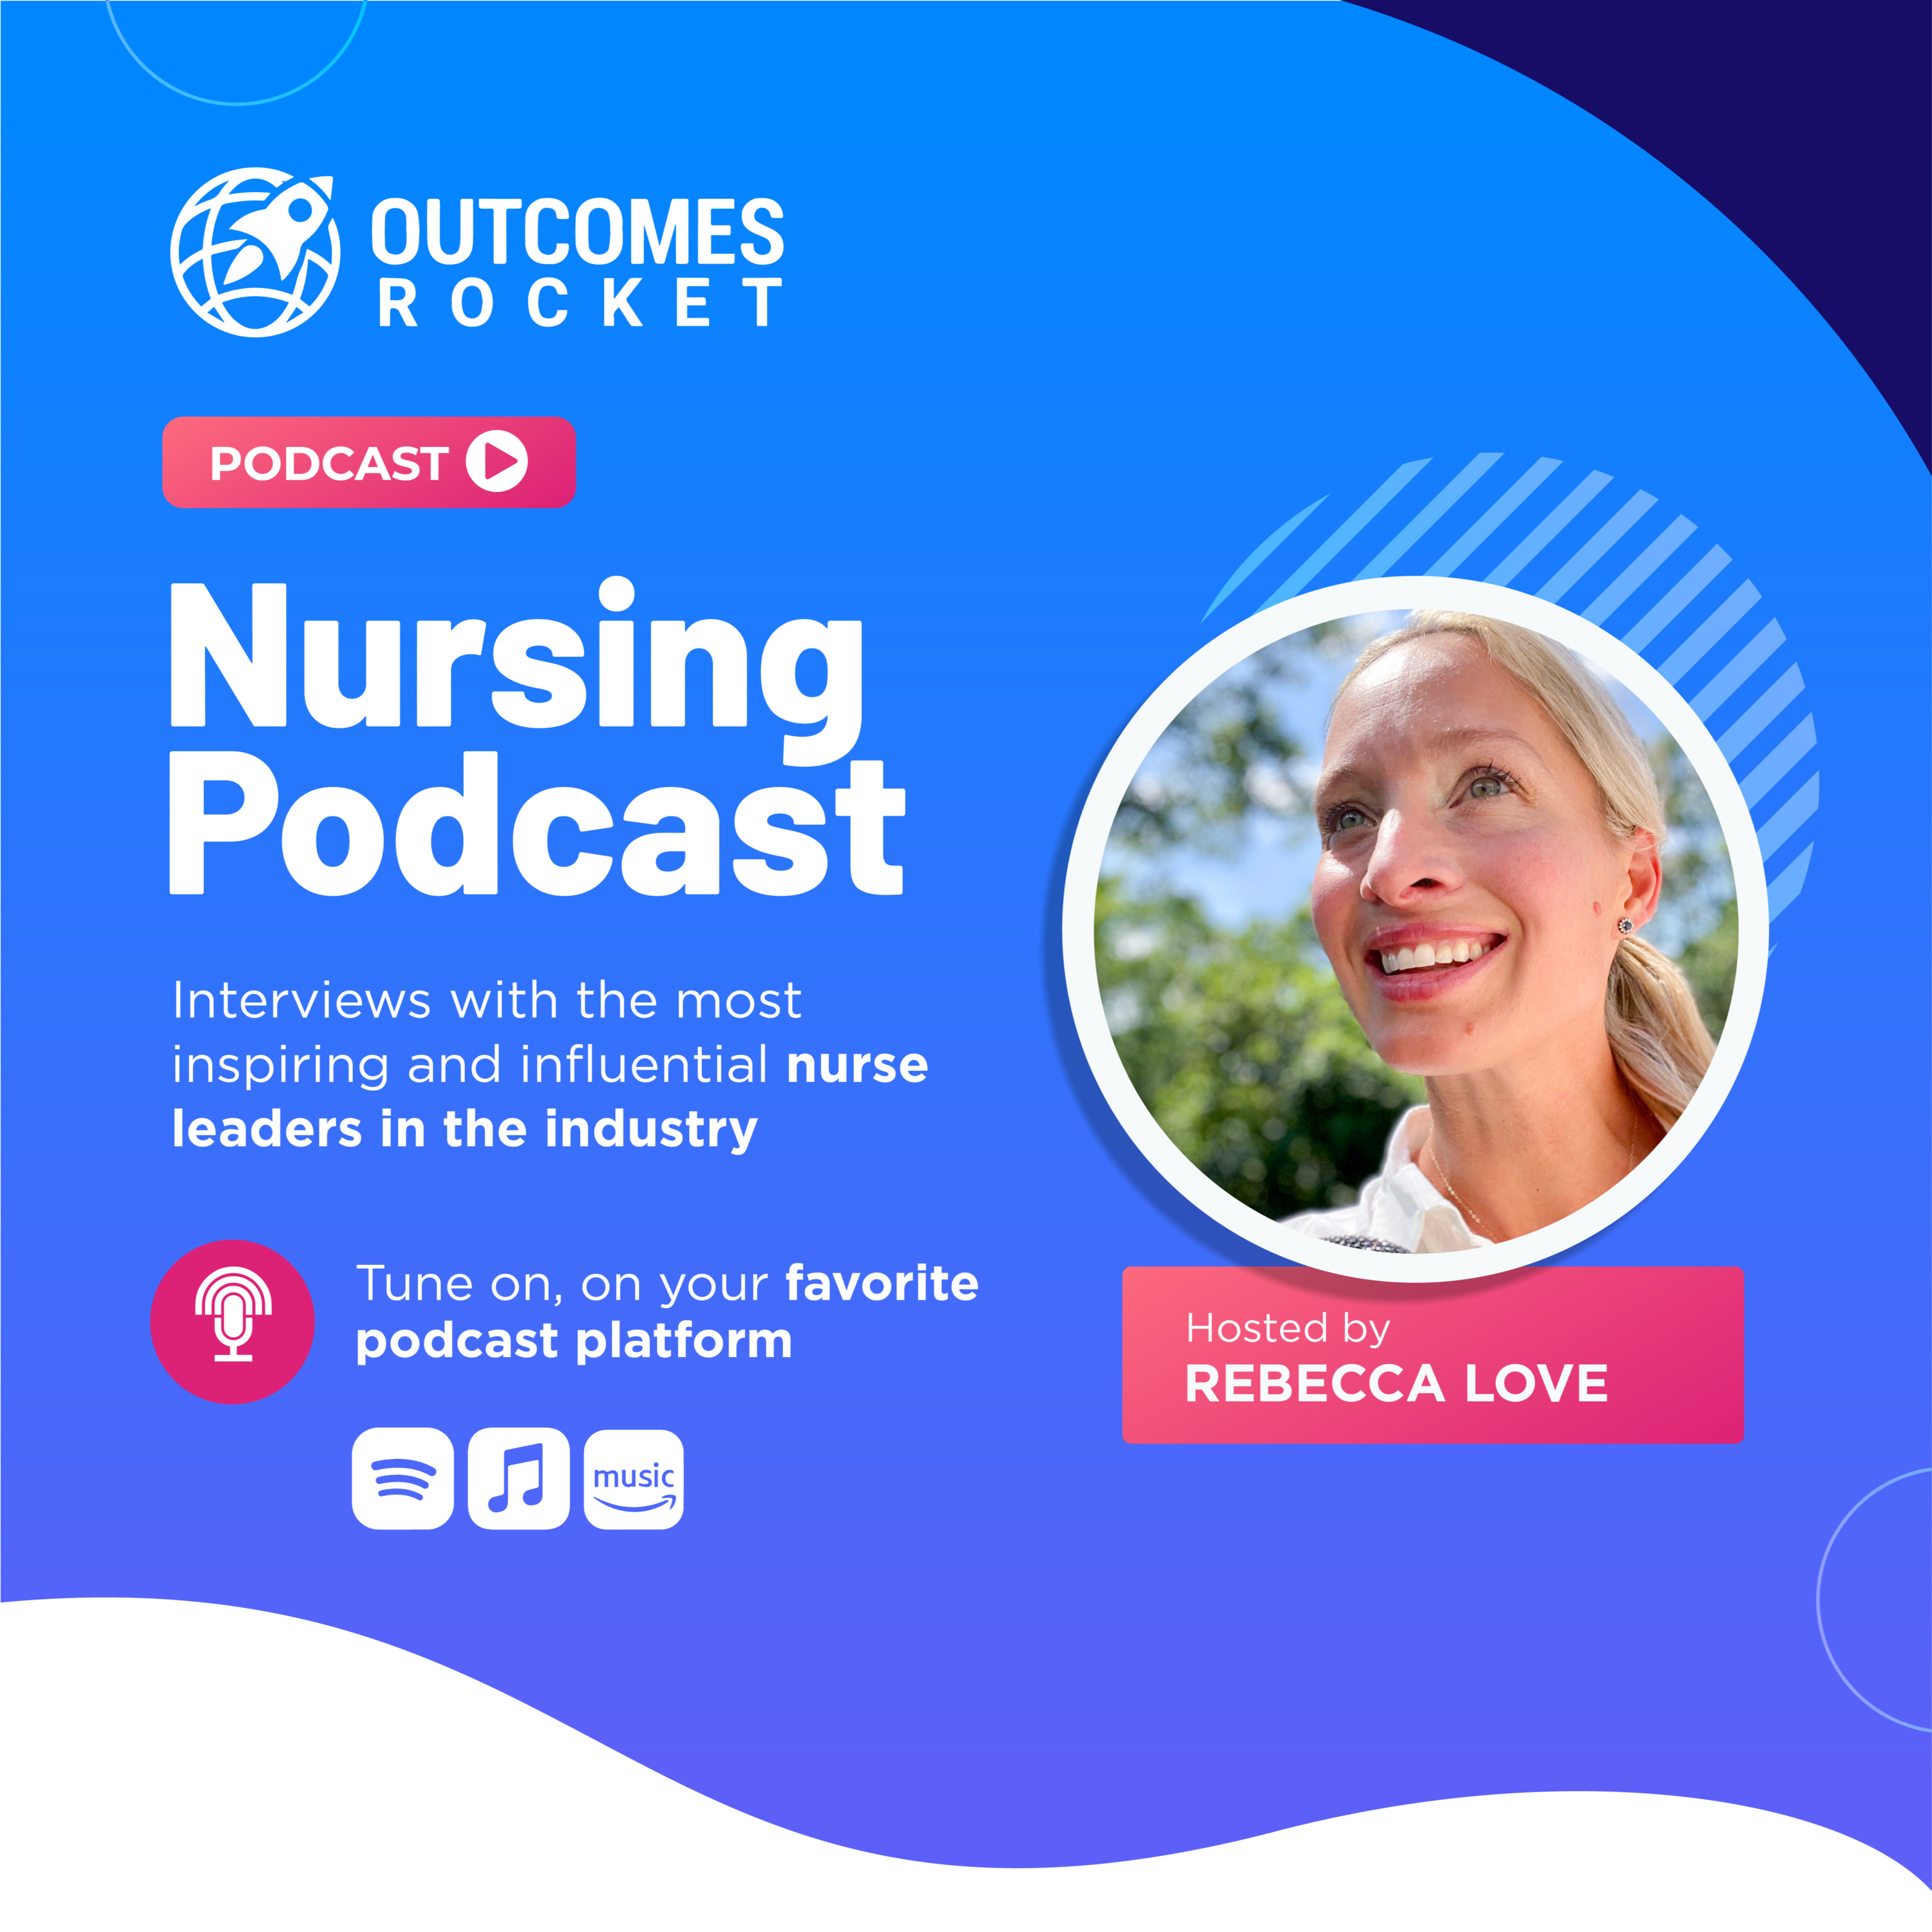 Advocating Advanced Learning Among Nurses and Nurse Leaders with Trish Richardson, Director of Post-Acute Care Solutions at Relias